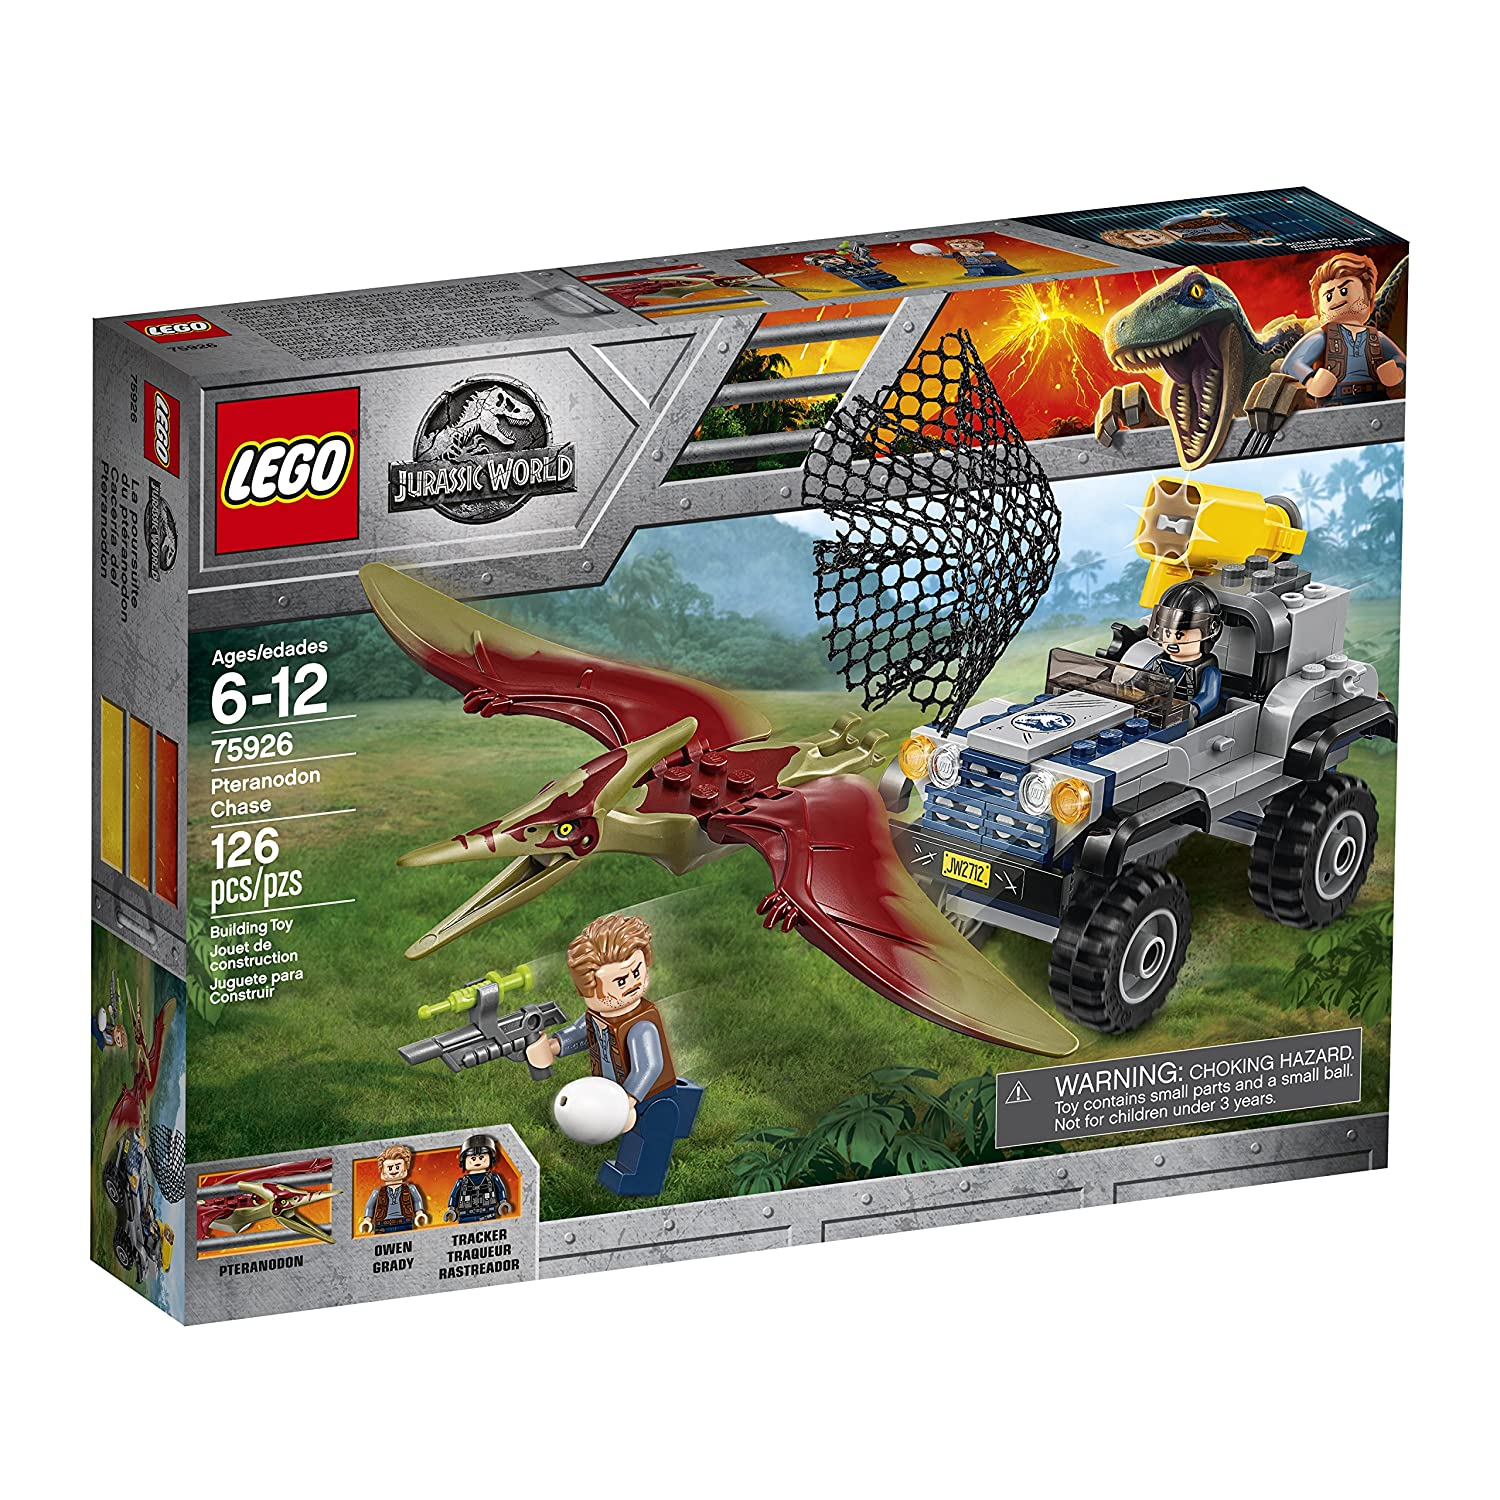 Top 9 Best Lego Jurassic Park Sets Reviews in 2021 14